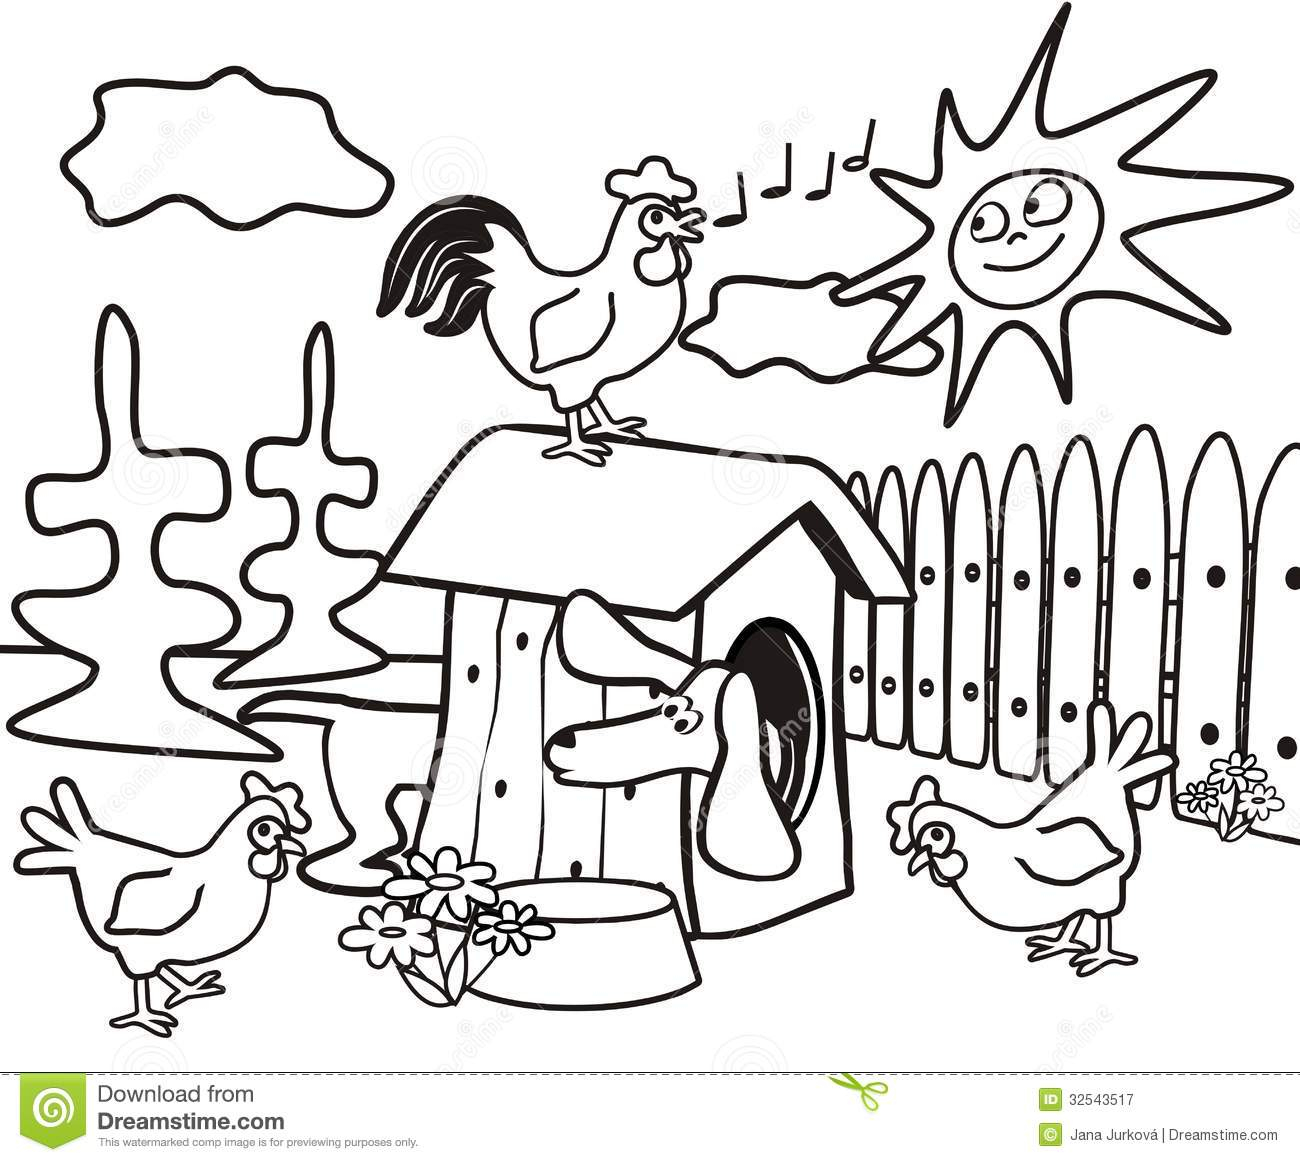 Pdf Coloring Pages For Kids Coloring Coloring Kids Book Free Picture Inspirations Patterns